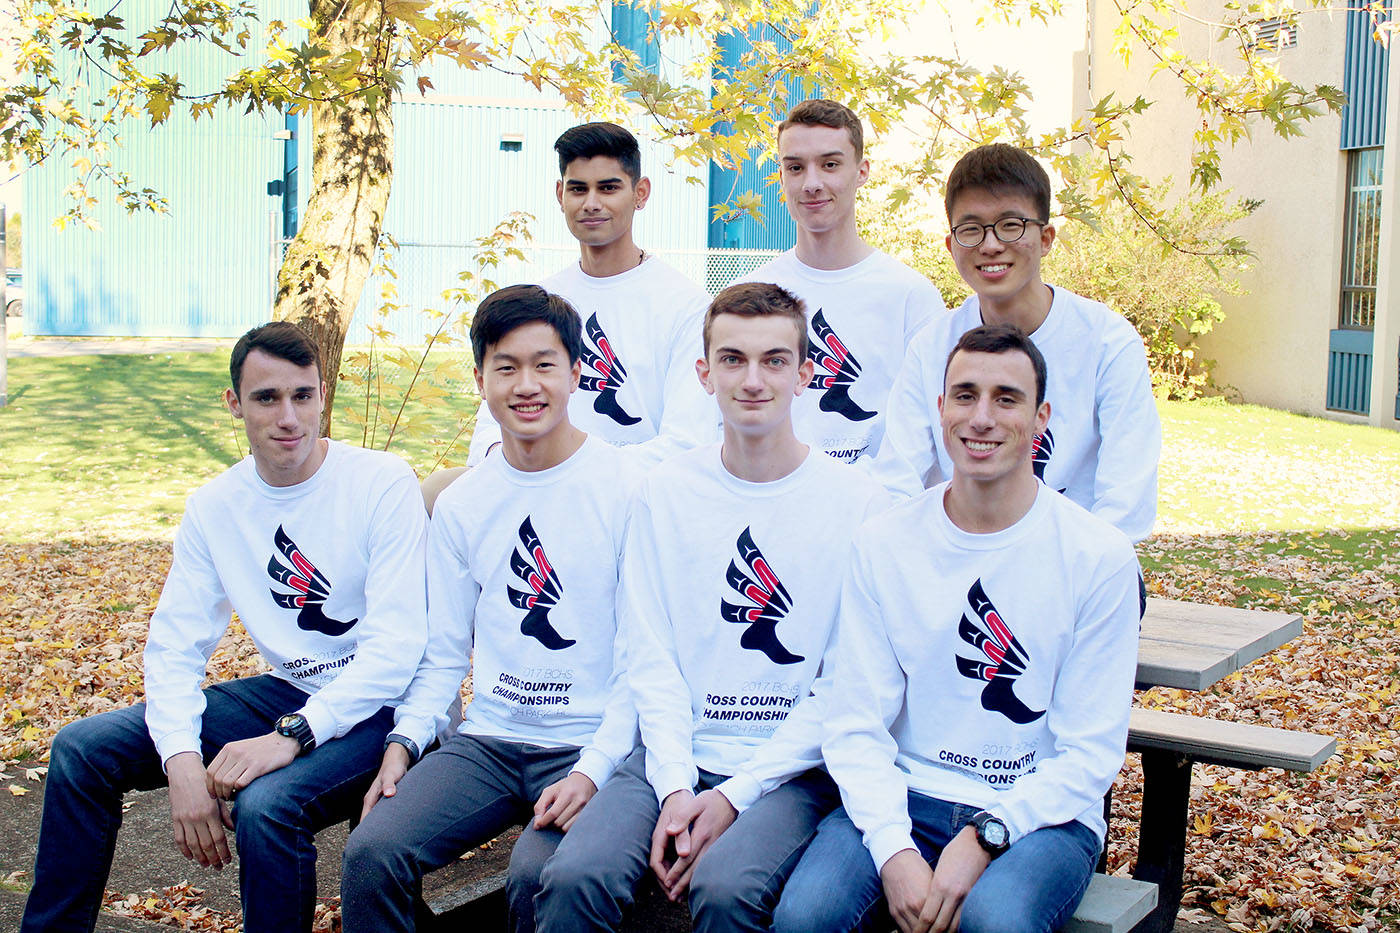 The R.E. Mountain Eagles finished second in senior boys standings at the B.C. high school cross country championships, held Nov. 4 at Jericho Beach in Vancouver. The team includes, back row: Brydon Pires, Jordan Schmidt, and Danny Lee. Front Row: Zach Wyatt, Kenneth Xing, Felix Allen, and Tate Wyatt.